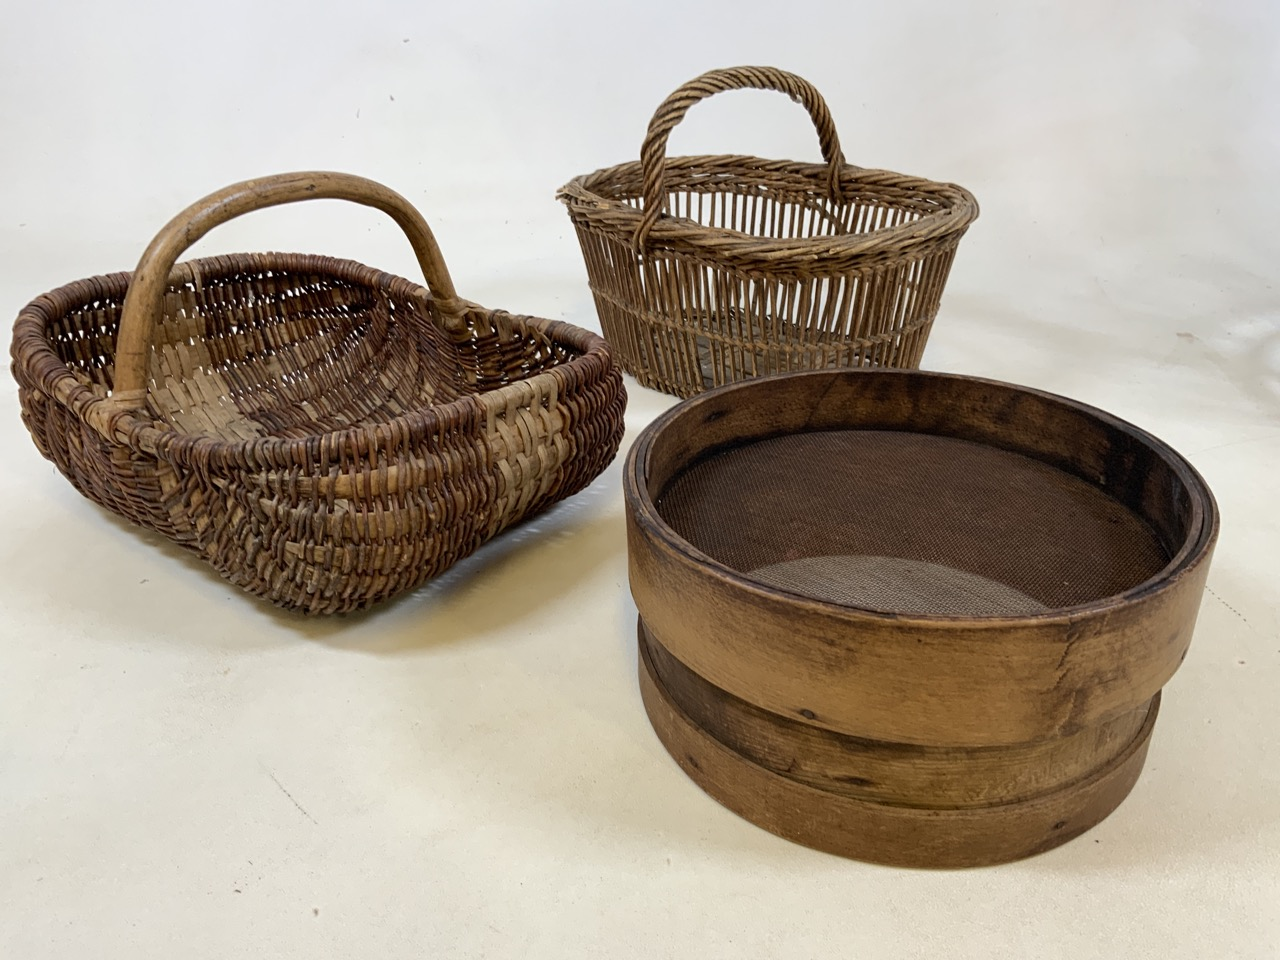 Two vintage french baskets together with a wooden sieve .Sieve W: 27cm x H: 13cm.